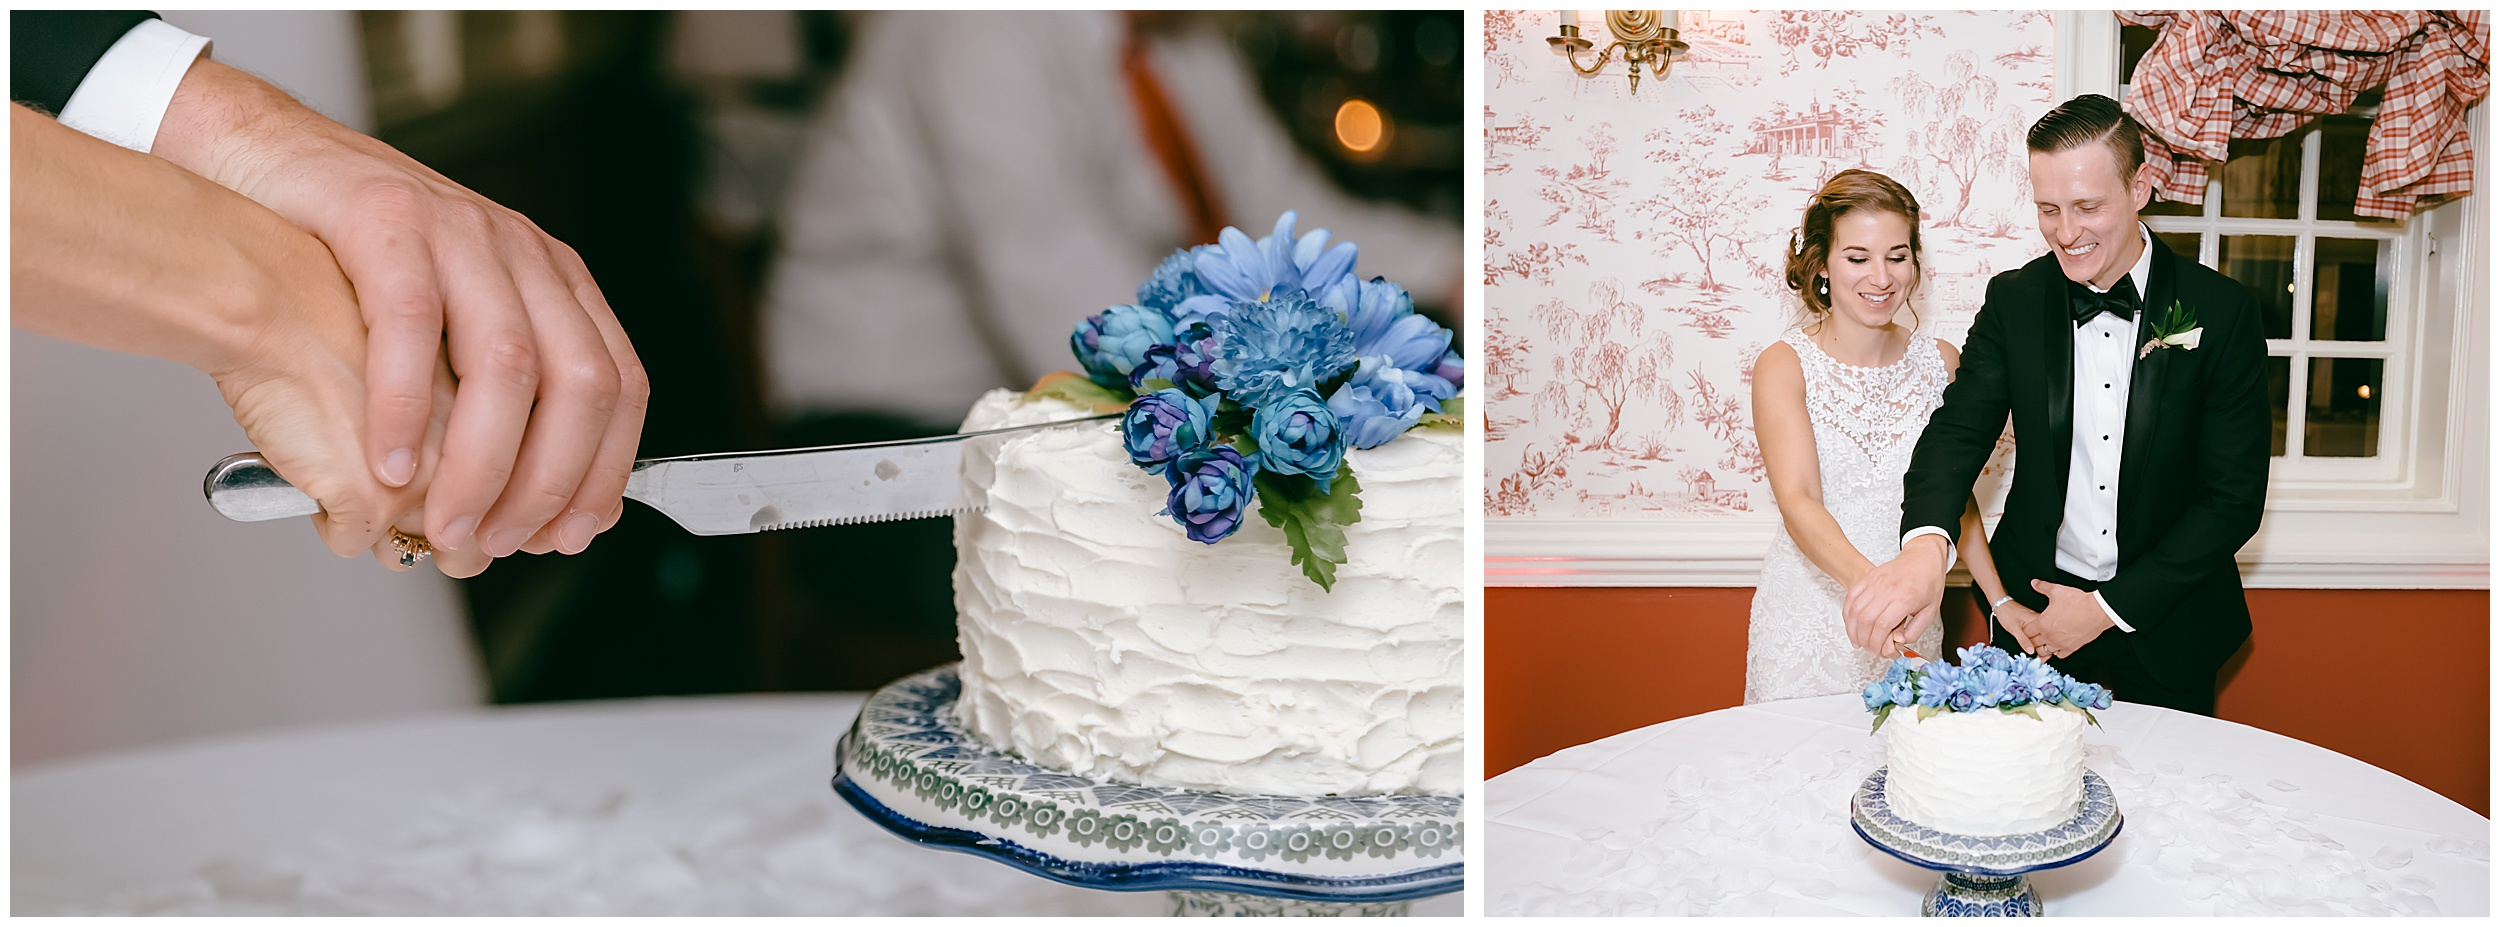 cake-cutting-floral-reception